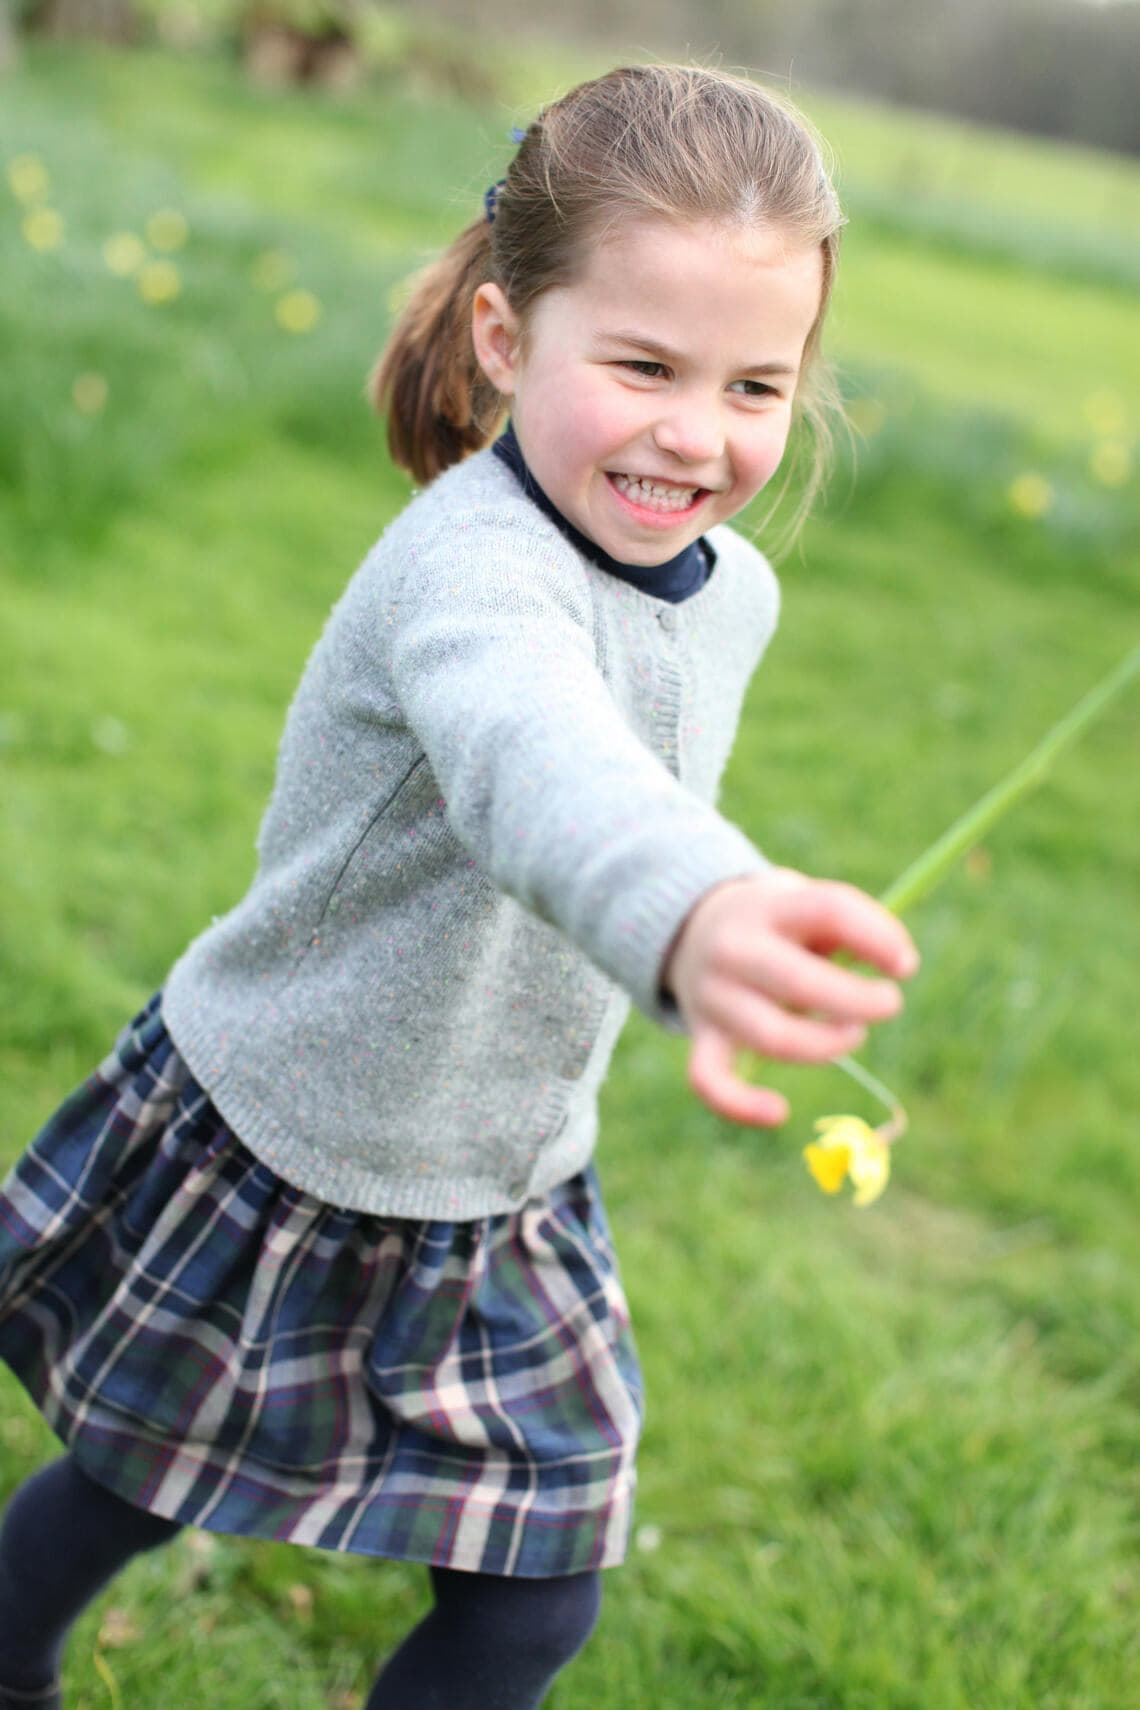 NORFOLK, ENGLAND - APRIL 2019: Undated handout photo of Princess Charlotte taken by her mother, Catherine, Duchess of Cambridge, at their home in Norfolk in April to mark her fourth birthday on Thursday May 2nd, 2019. (Photo by the Duchess of Cambridge via Getty Images)Copyright: Duke and Duchess of Cambridge. NO COMMERCIAL USE. NO MERCHANDISING, ADVERTISING, SOUVENIRS, MEMORABILIA or COLOURABLY SIMILAR. NOT FOR USE AFTER 31 DECEMBER, 2019, WITHOUT PRIOR PERMISSION FROM KENSINGTON PALACE.